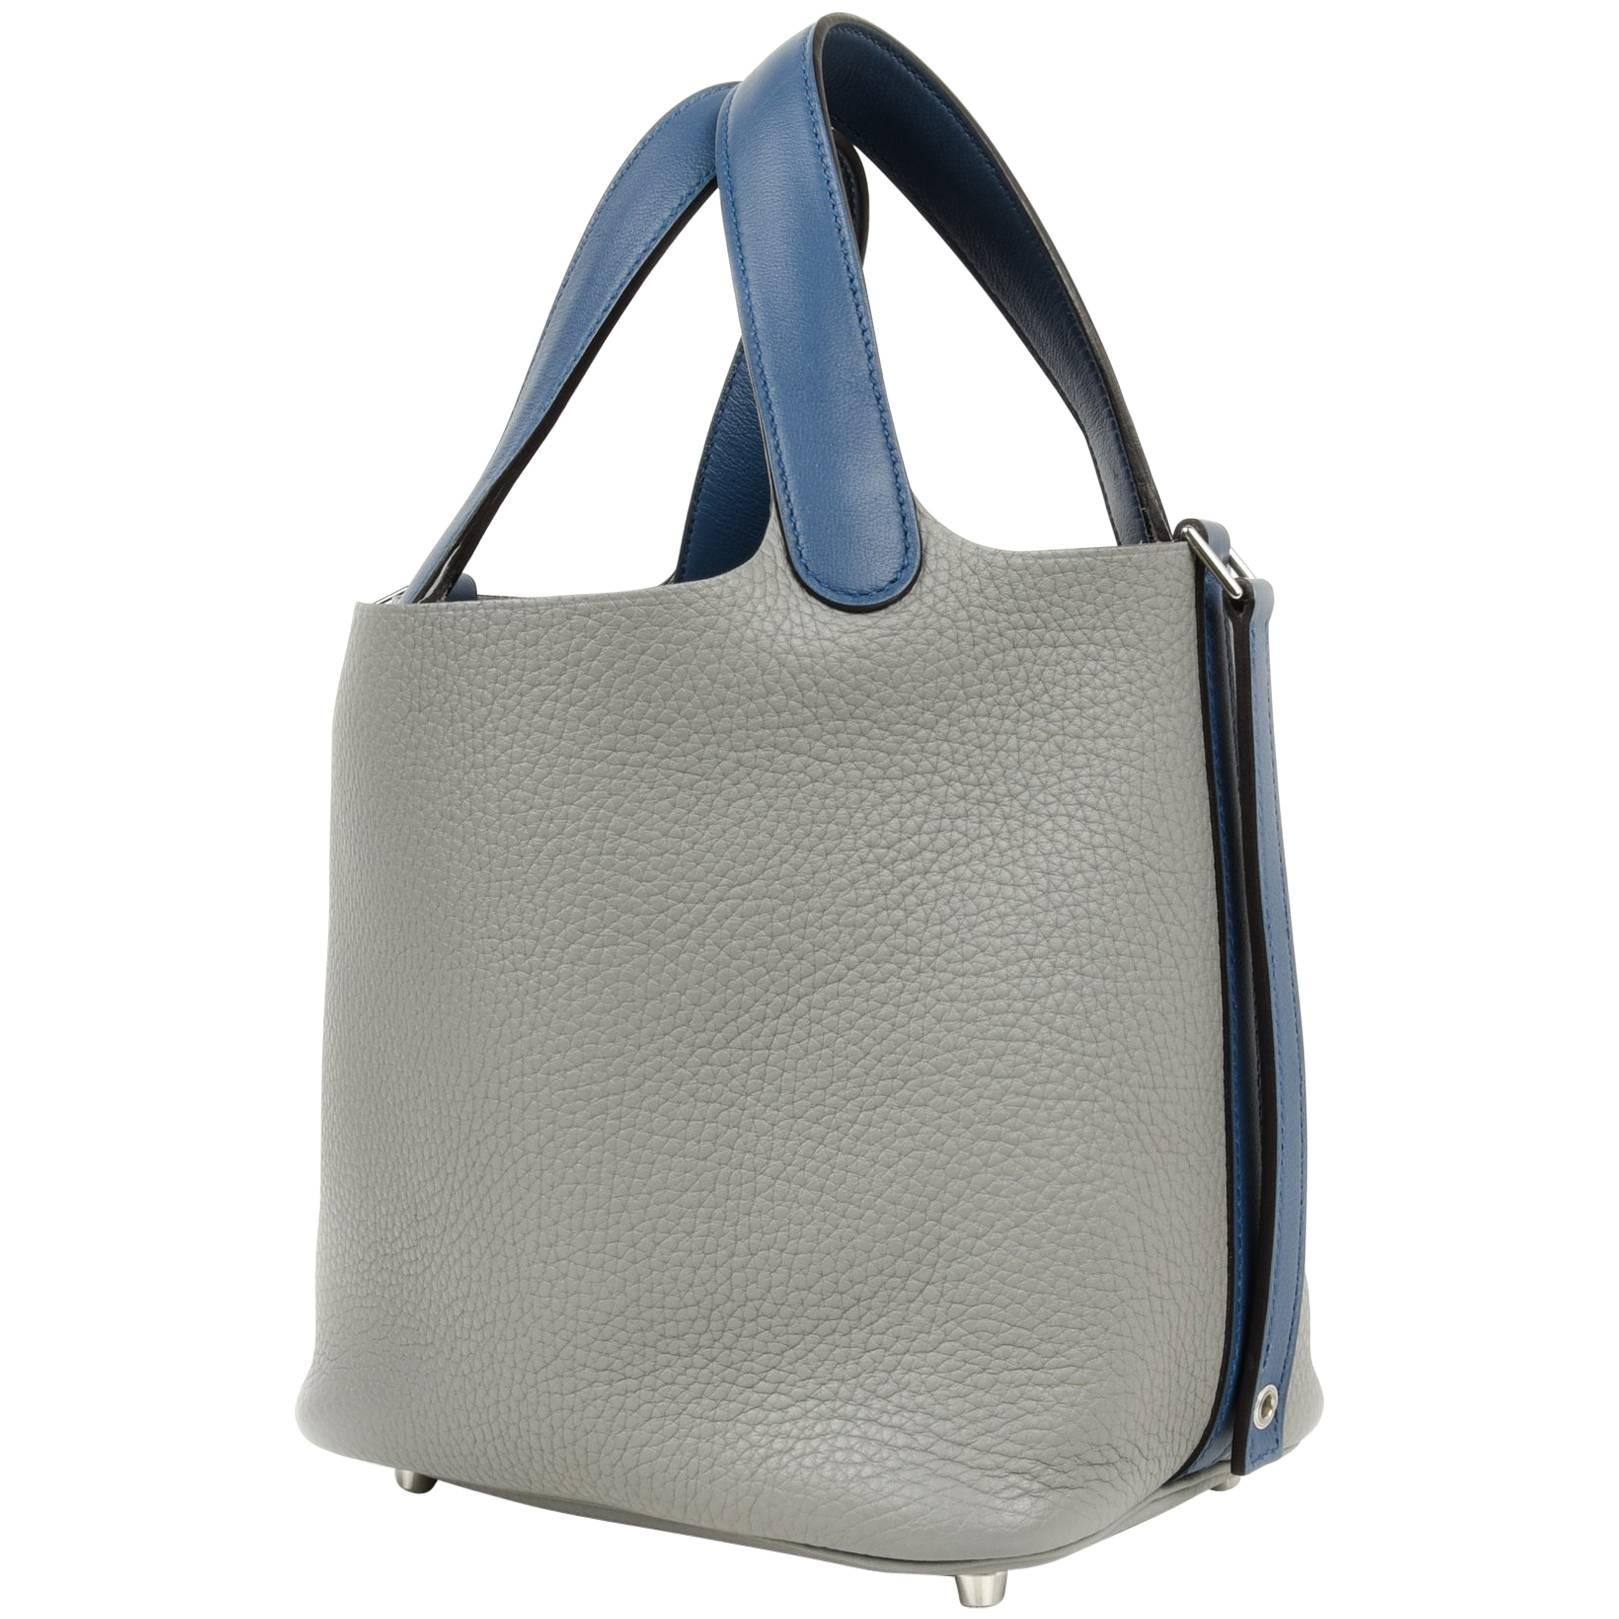 6330ccf83dc74 ... norway hermes picotin lock touch bag 18cm gris mouette blue agate  limited edition new for sale